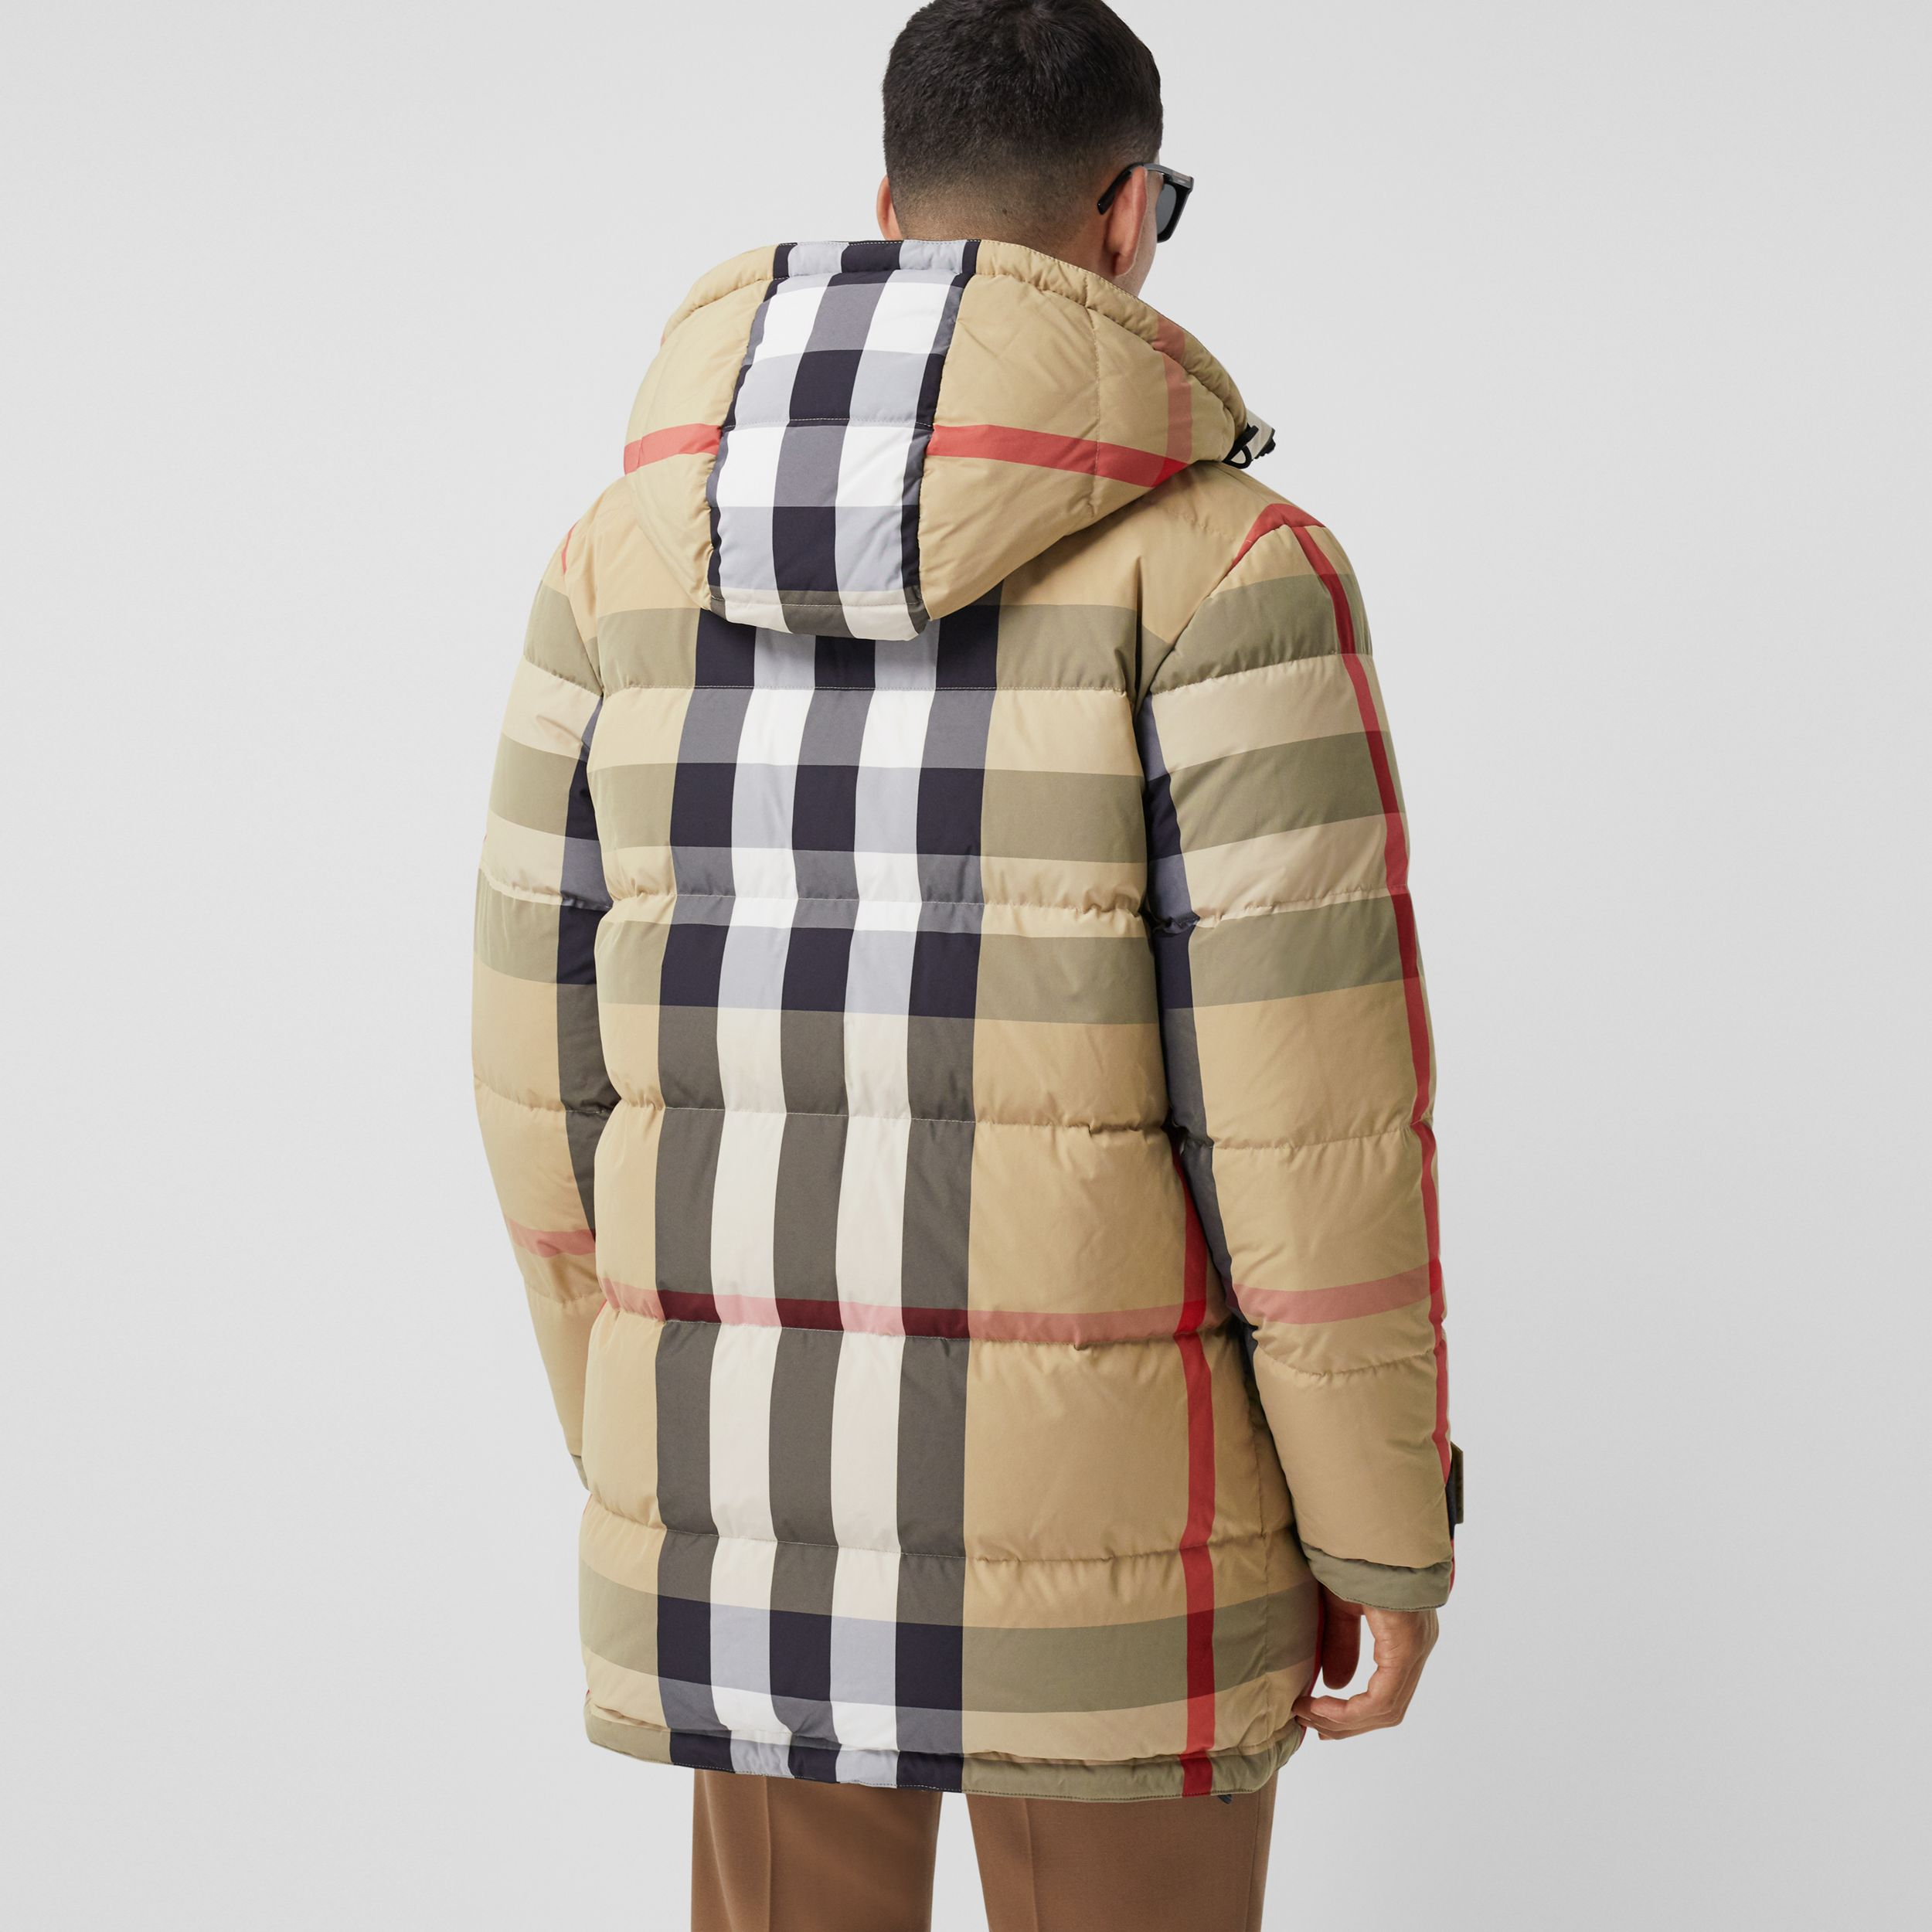 Reversible Check Recycled Nylon Puffer Jacket in Archive Beige/olive - Men | Burberry Hong Kong S.A.R. - 3